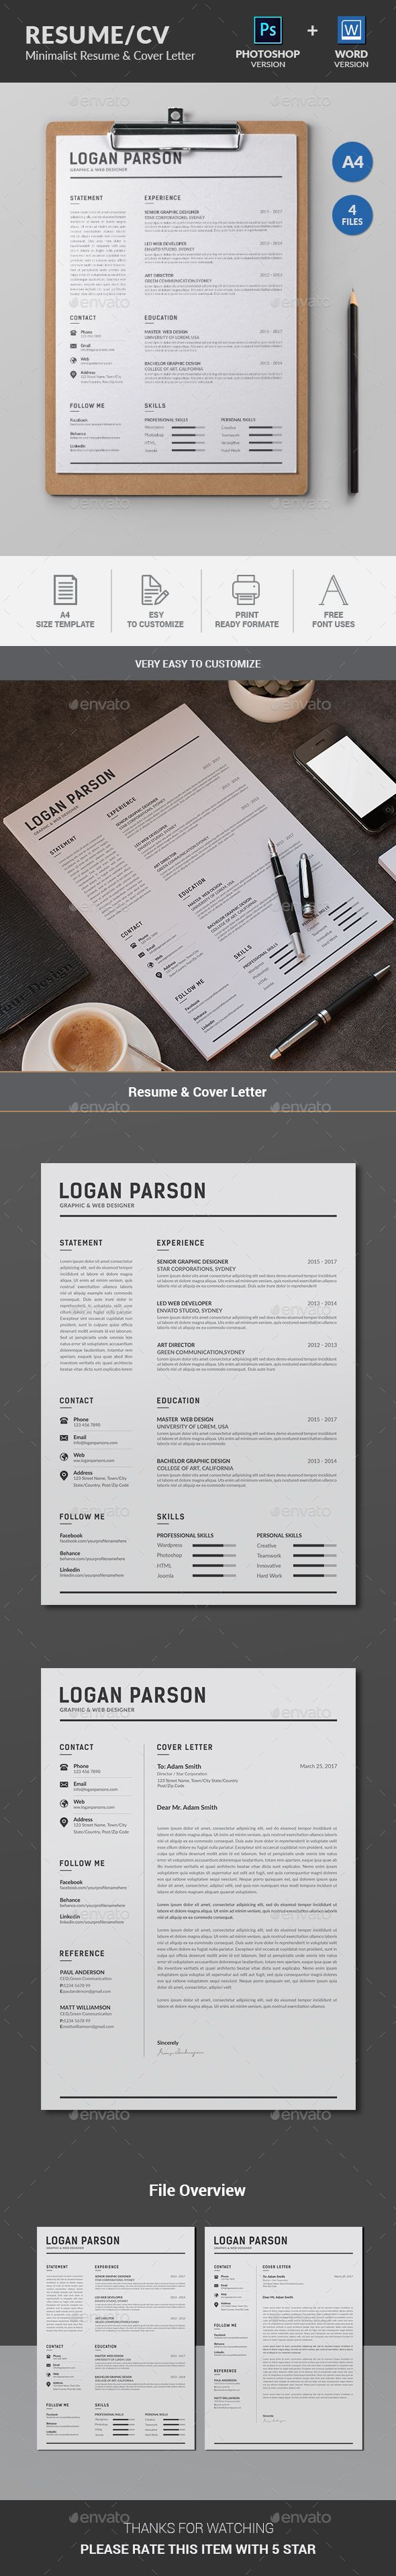 Resume Minimalist resume template focusing Name,Experience,Education and Skills which includes Resume & Cover Letter.International A4 & US Letter sizes included. Very Easy to edit your information such as typography, wording, colors and layout.this template created with strong baseline.